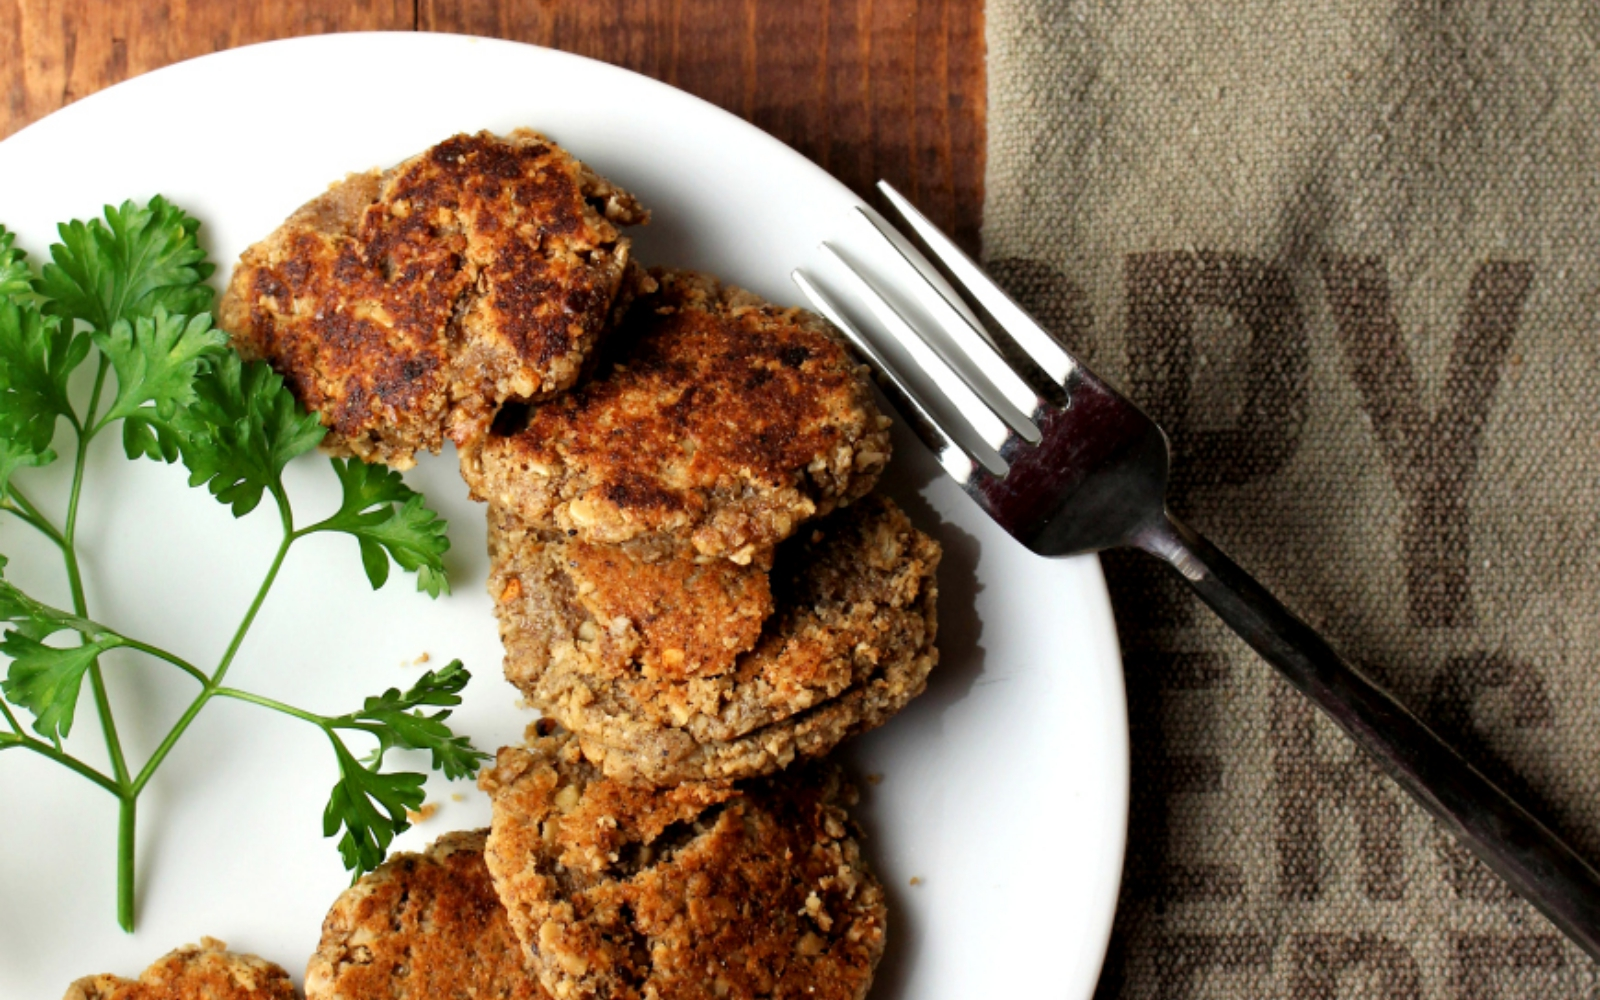 vegan walnut breakfast sausage